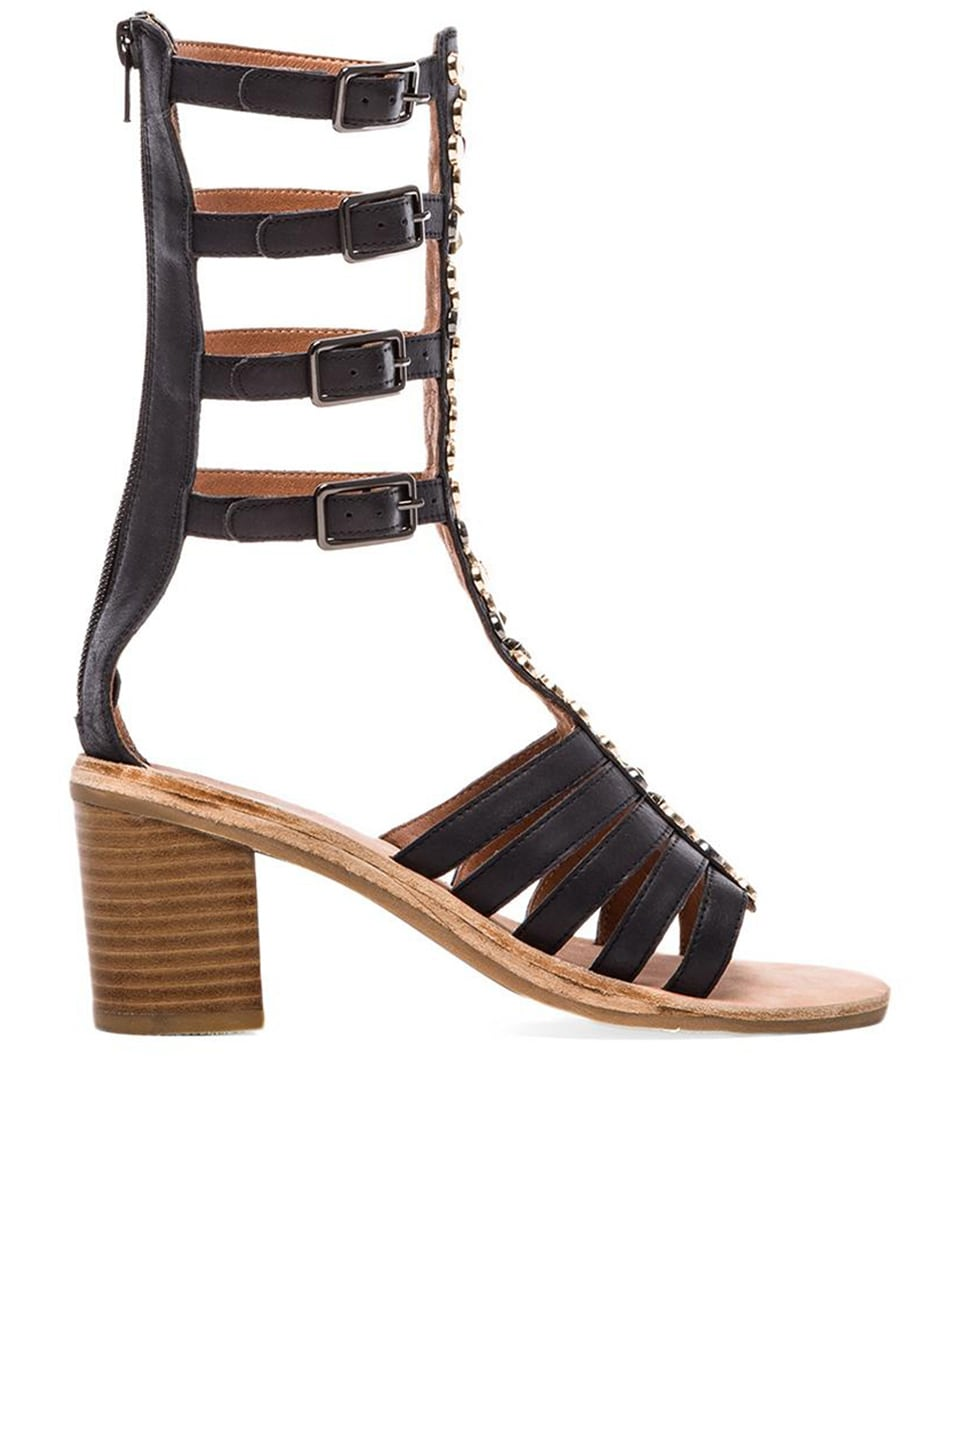 Jeffrey Campbell Klamath Embellished Sandal in Black